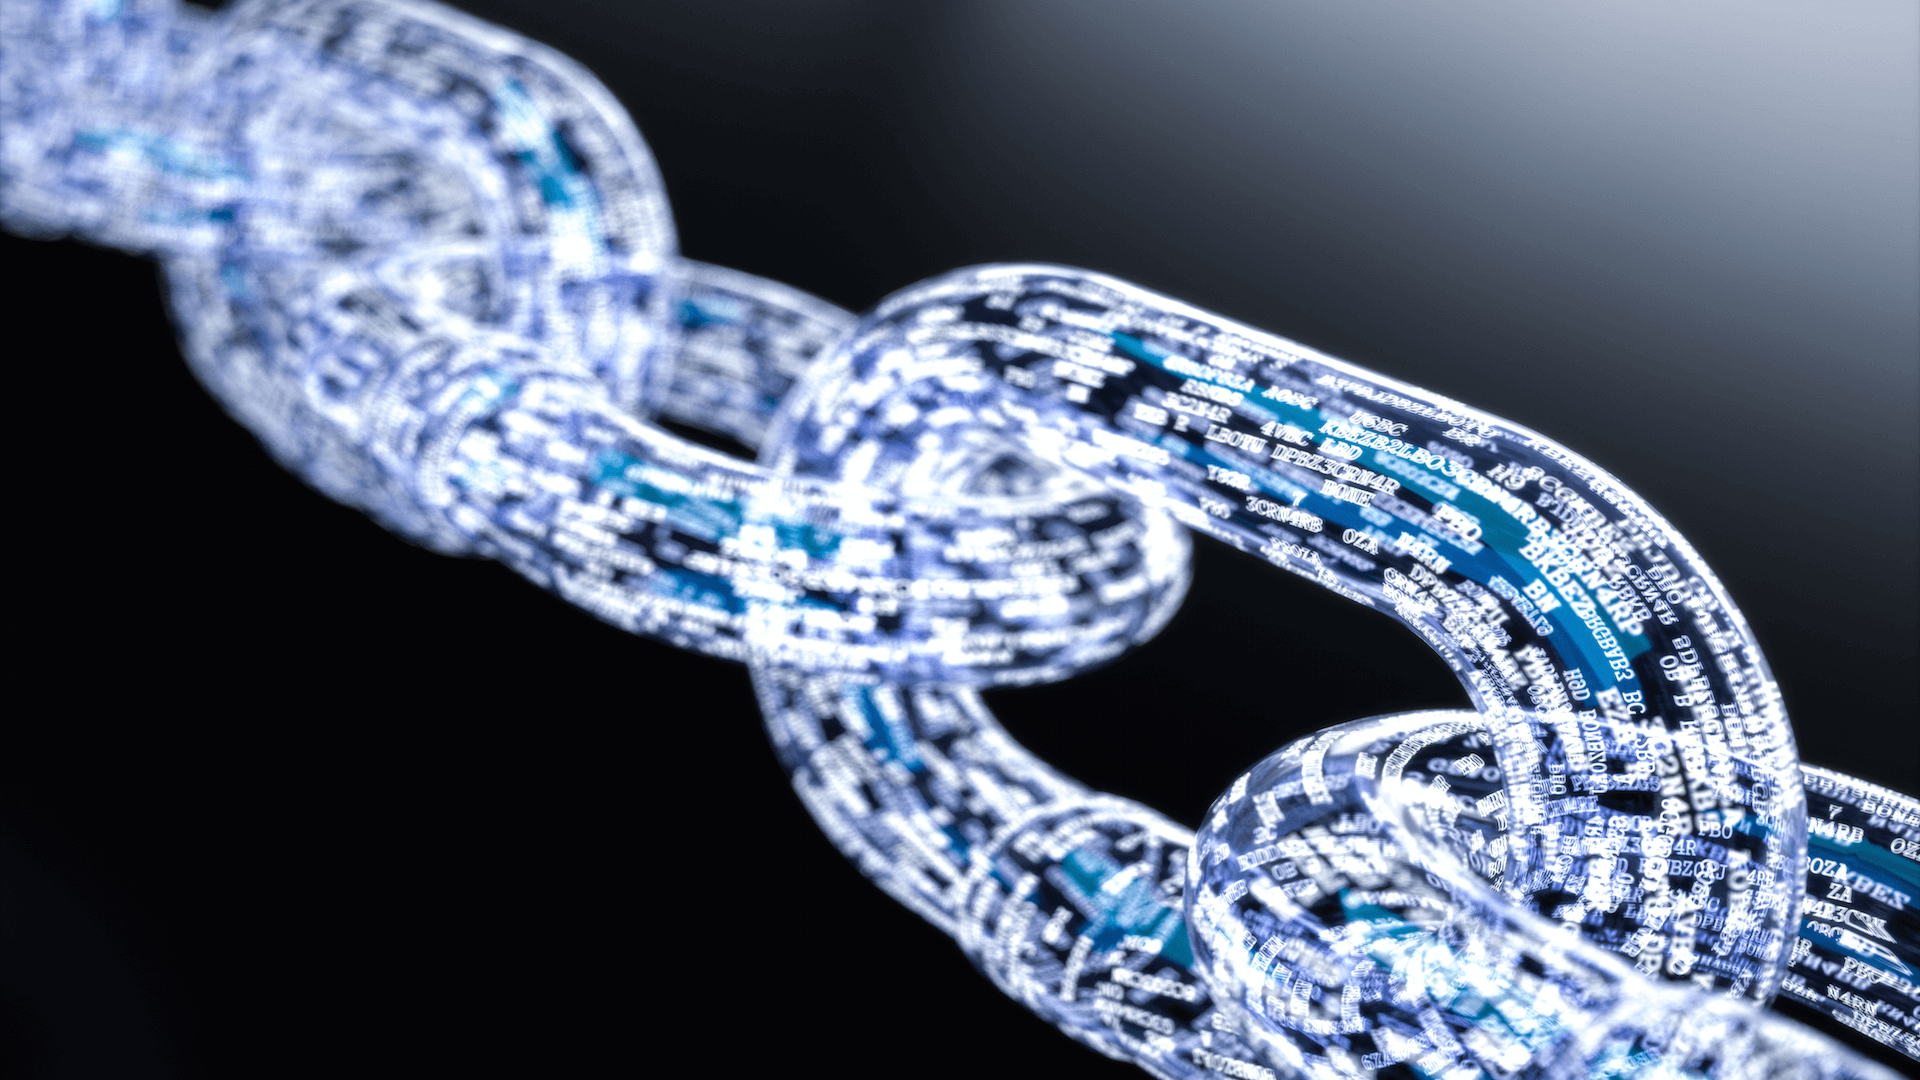 /13-sidechain-projects-every-blockchain-developer-should-know-about-804b65364107 feature image